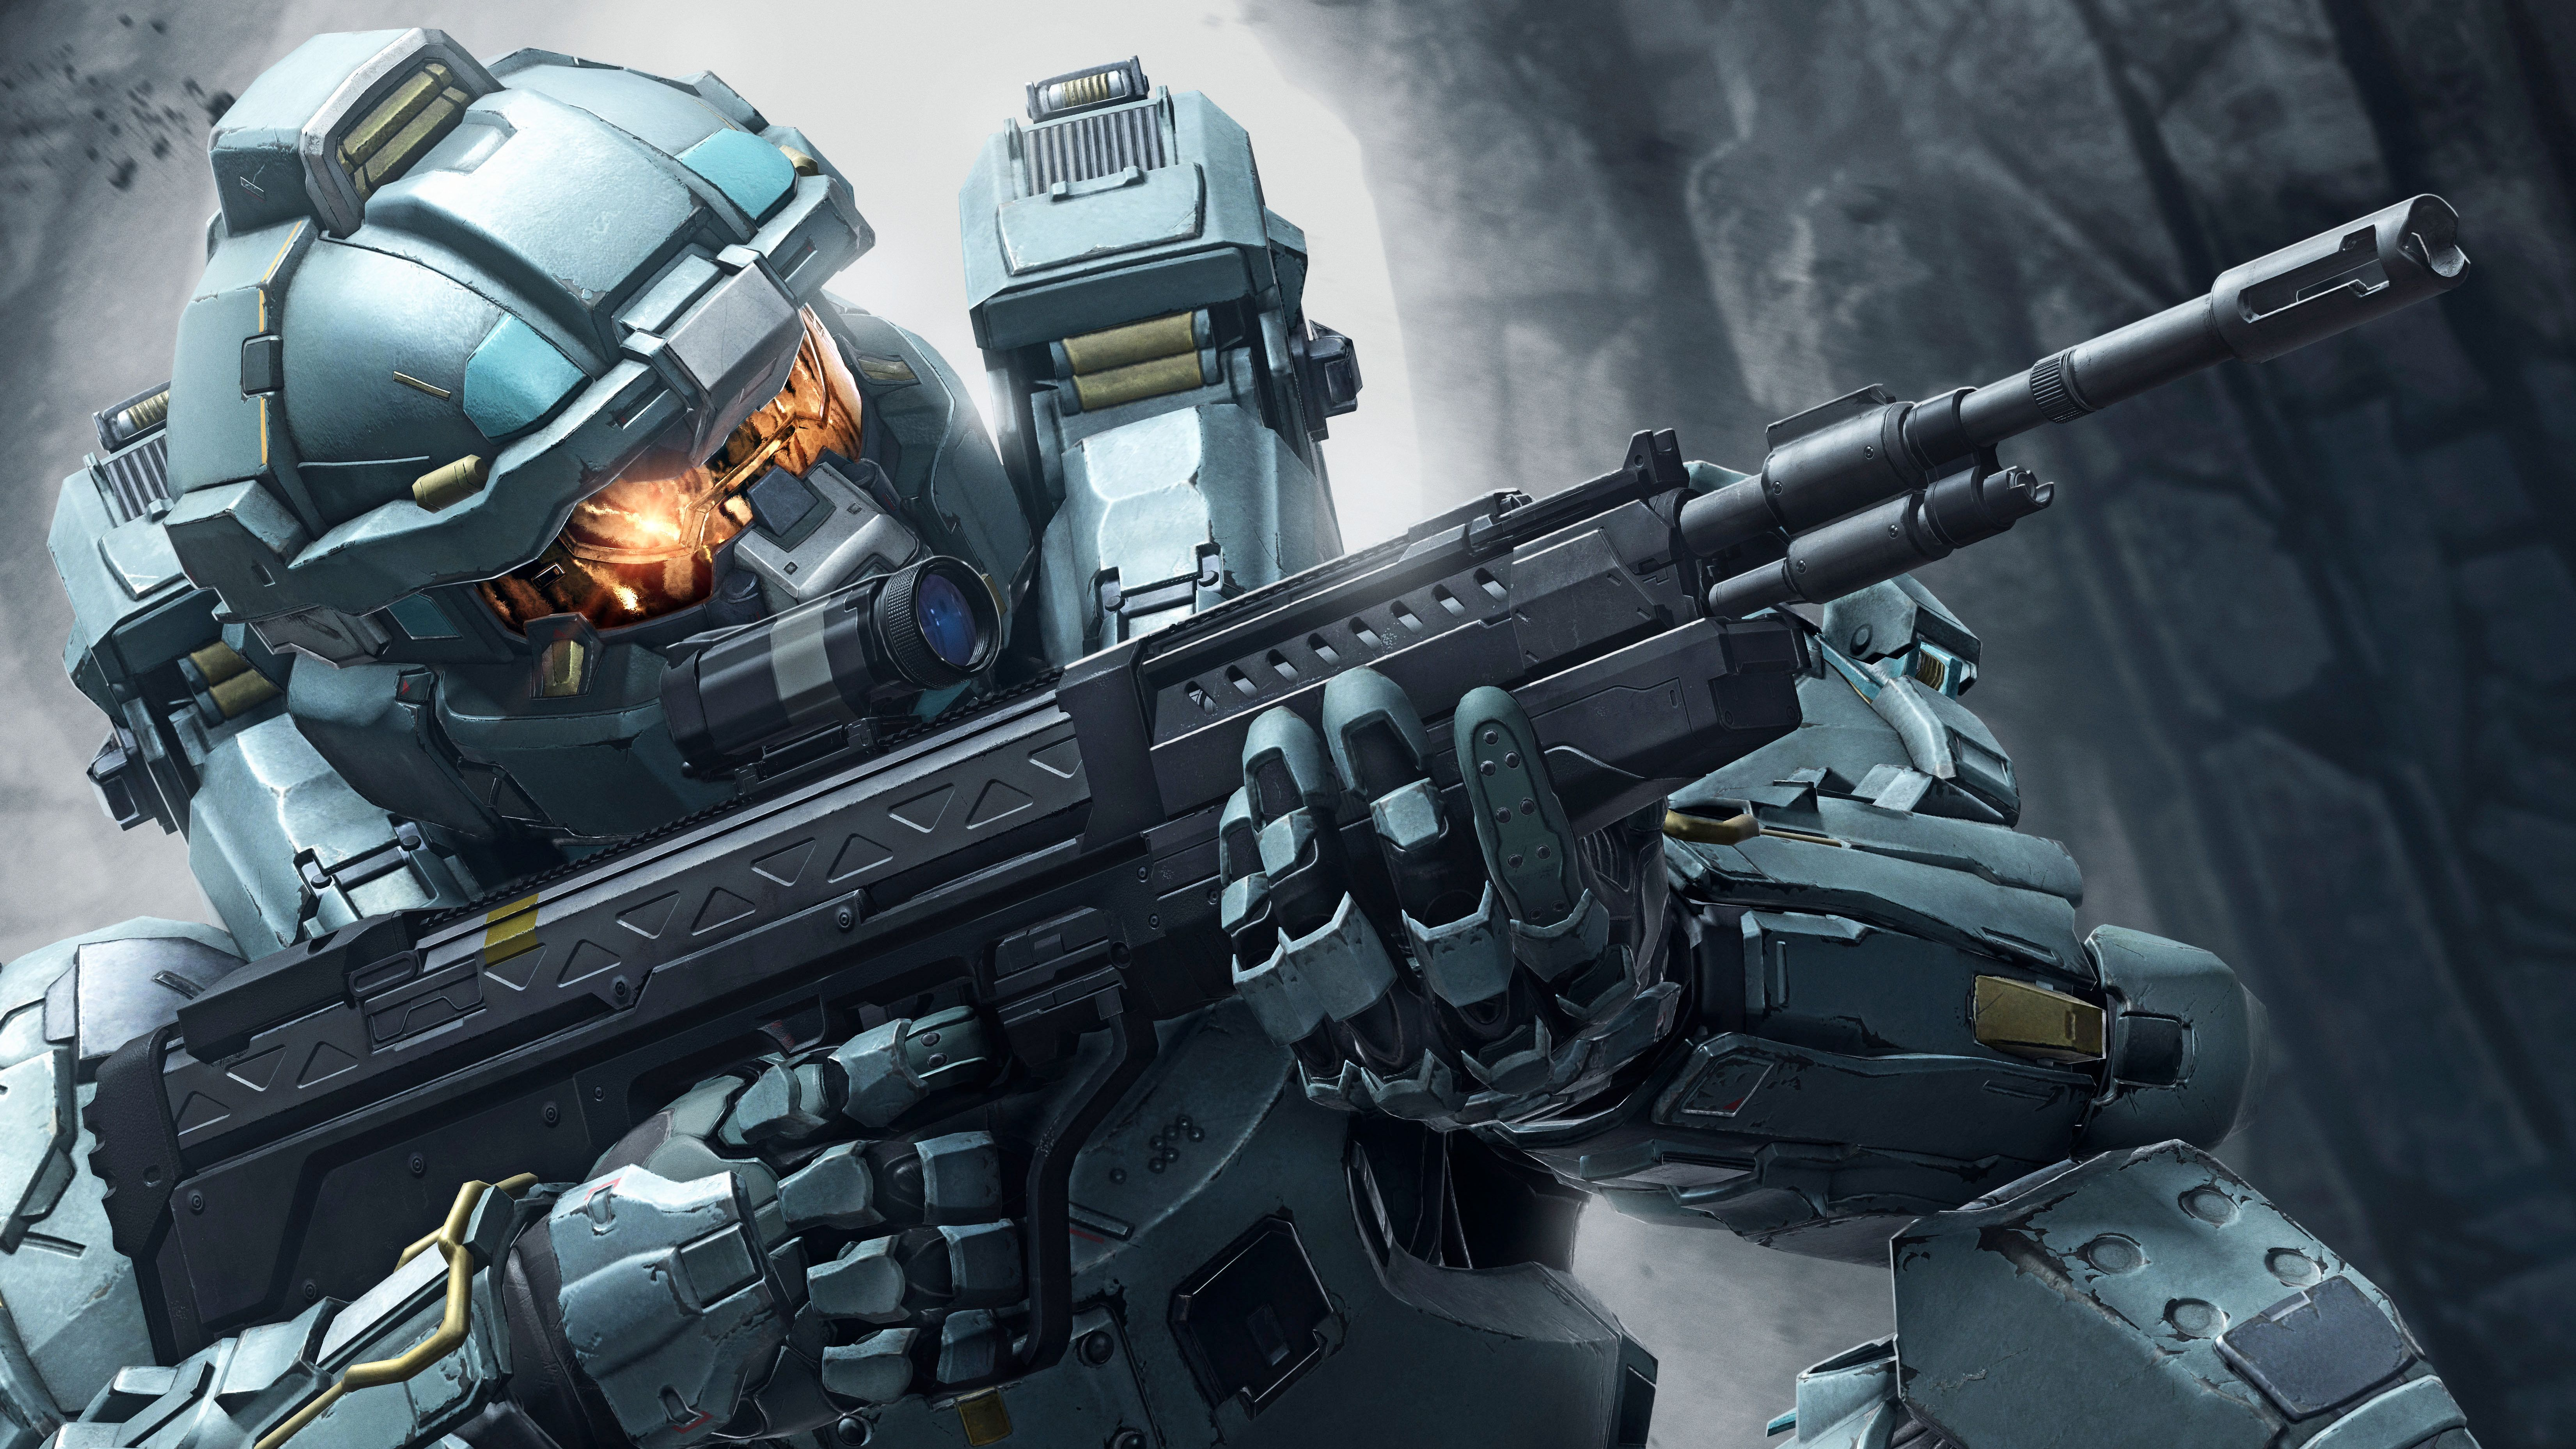 Halo 5 Guardians Computer Wallpapers Desktop Backgrounds 6604x3715 Id 607049 Halo Game Halo 5 Halo 5 Guardians